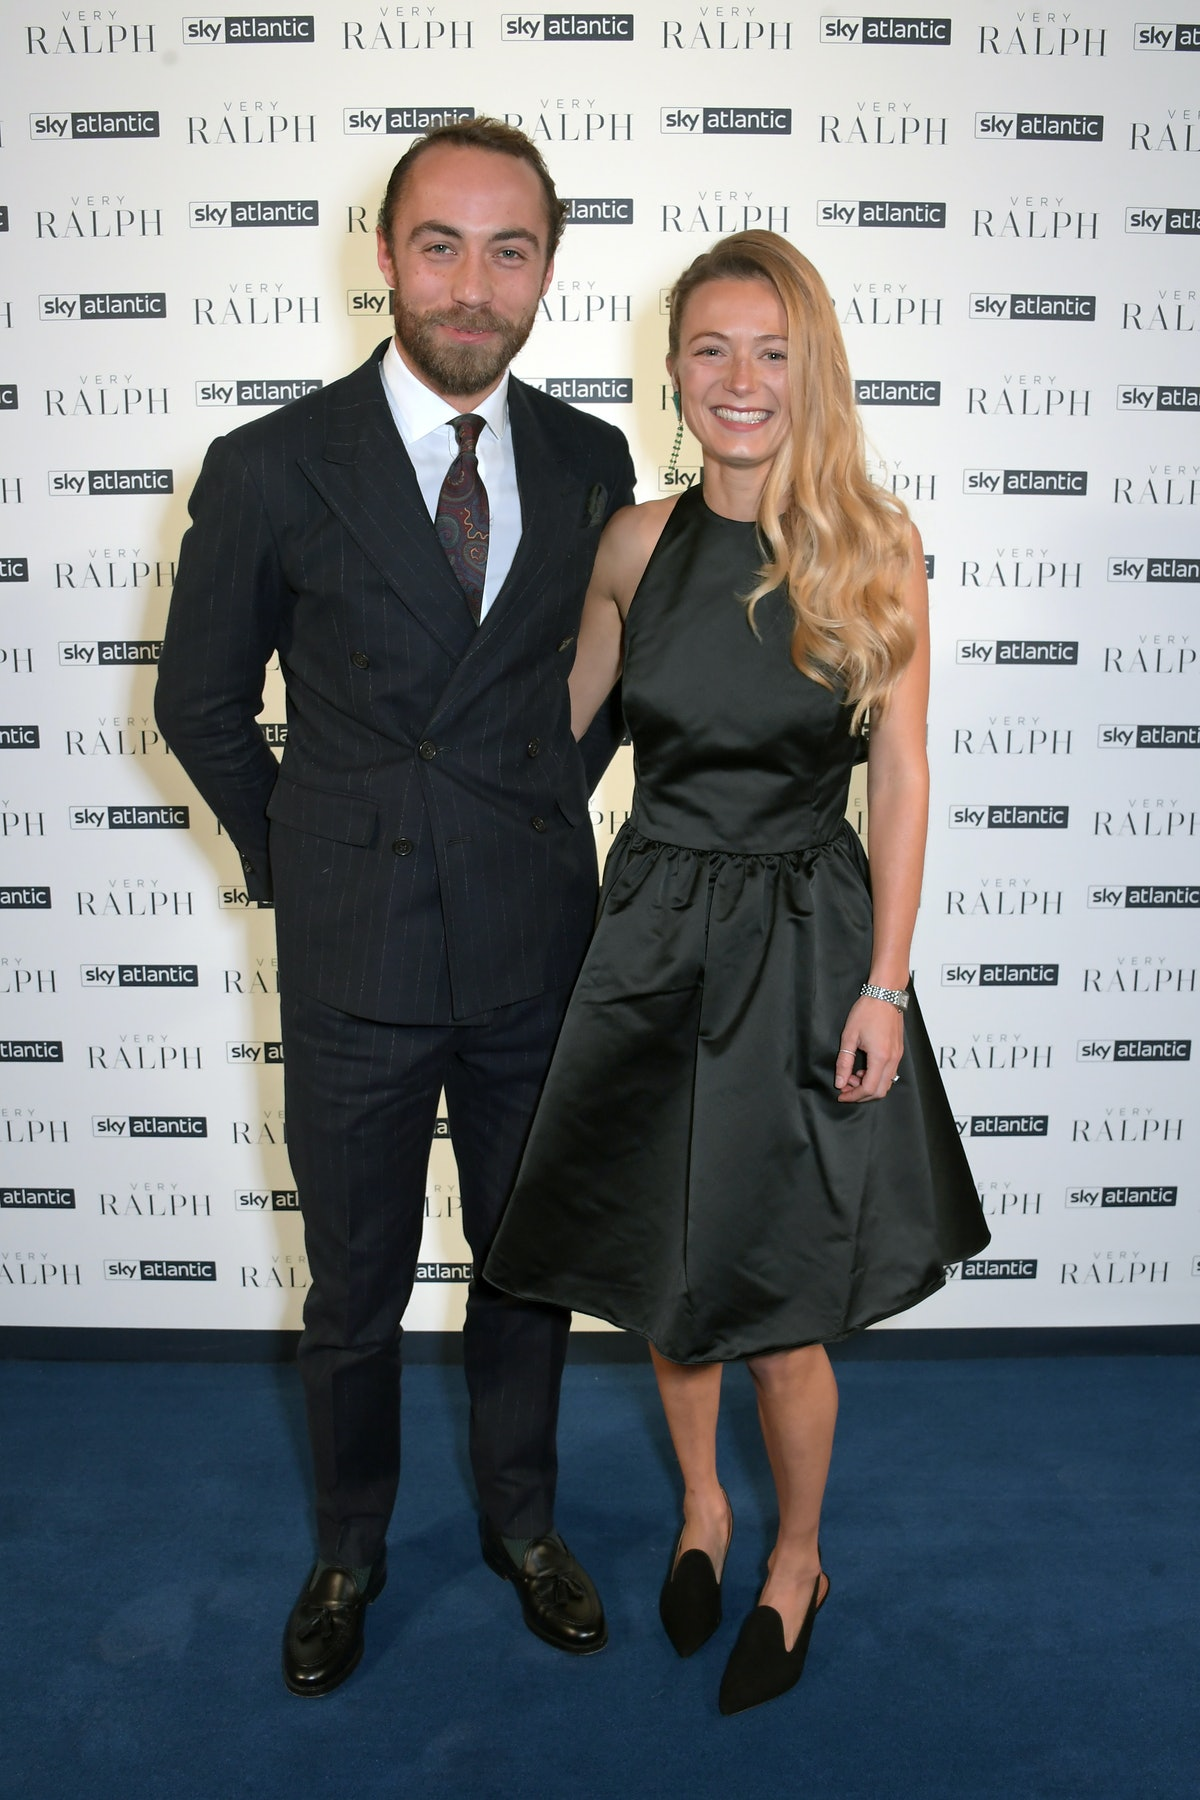 James Middleton and Alizee Thevenet attend the UK Premiere of 'Very Ralph' in London. The couple got...